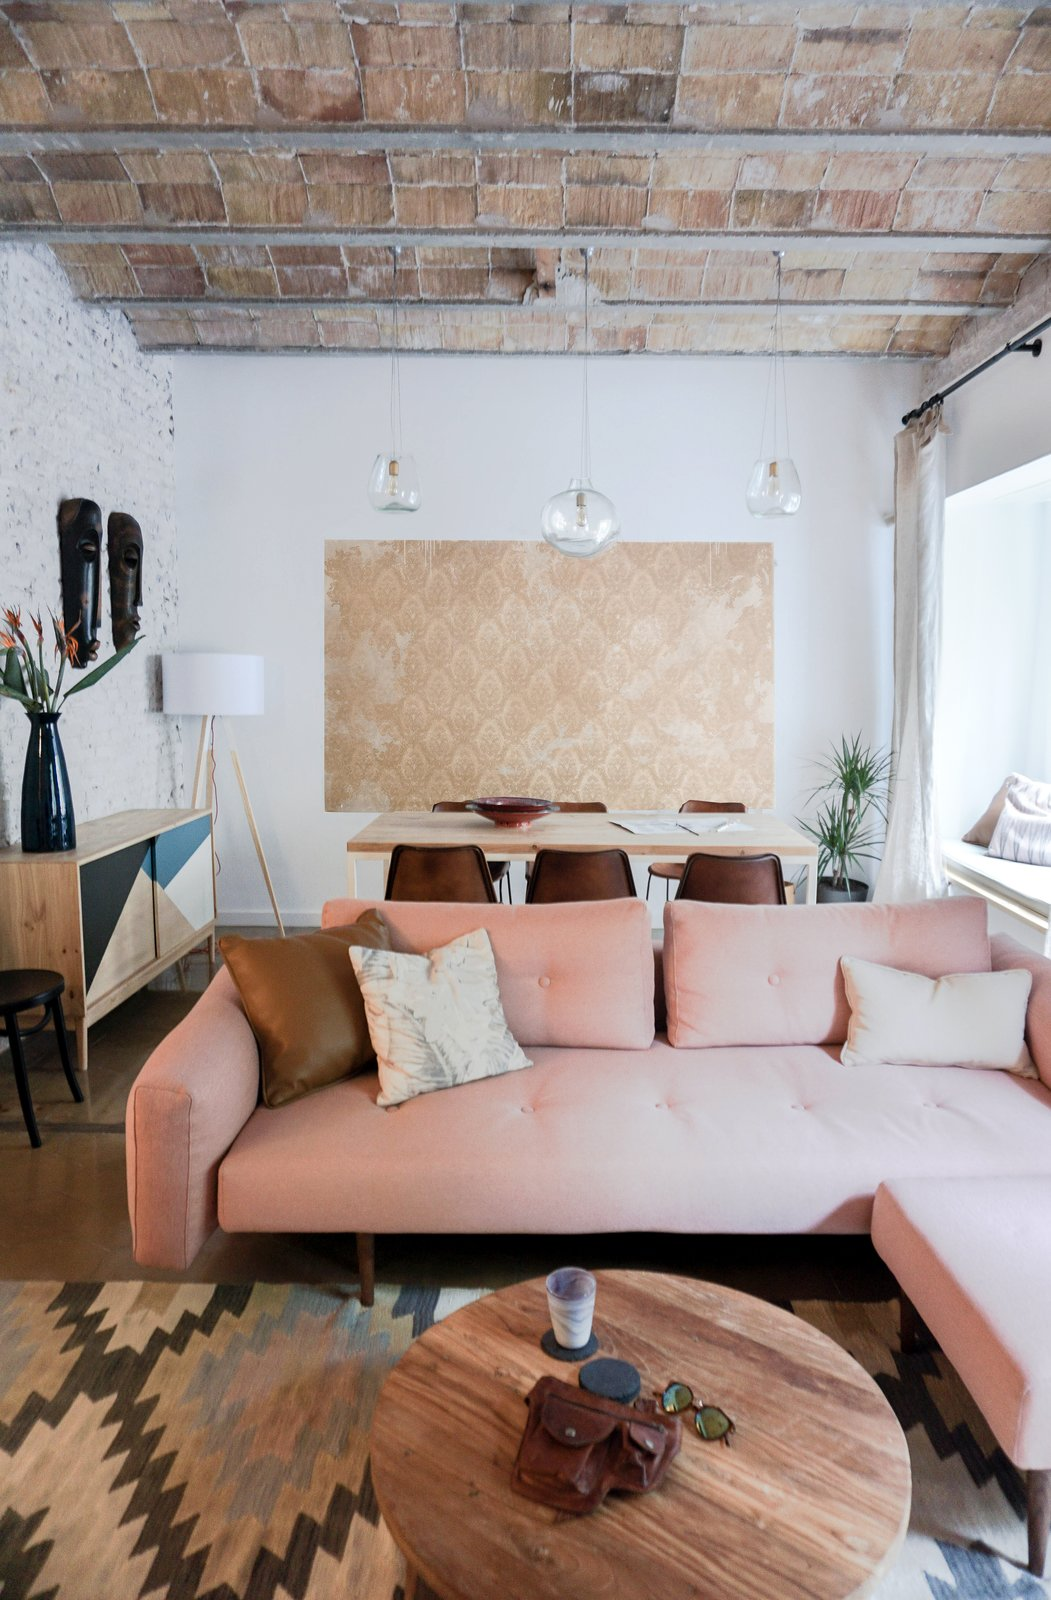 To make the space feel brighter, all of the walls—even bricks—are painted white, which contrasts with the raw brick ceiling and original brown tile floors. The Recast Plus sofa bed, with a pink hue that echoes the brick ceiling, is from Innovation Living. The blown-glass Gordiola pendants are a design the resident saw in a Mallorca hotel that Bloomint designed. Tagged: Living Room, Sofa, Ceramic Tile Floor, and Pendant Lighting.  Photo 2 of 9 in A Barcelona Apartment Gets a Softly Modern Renovation